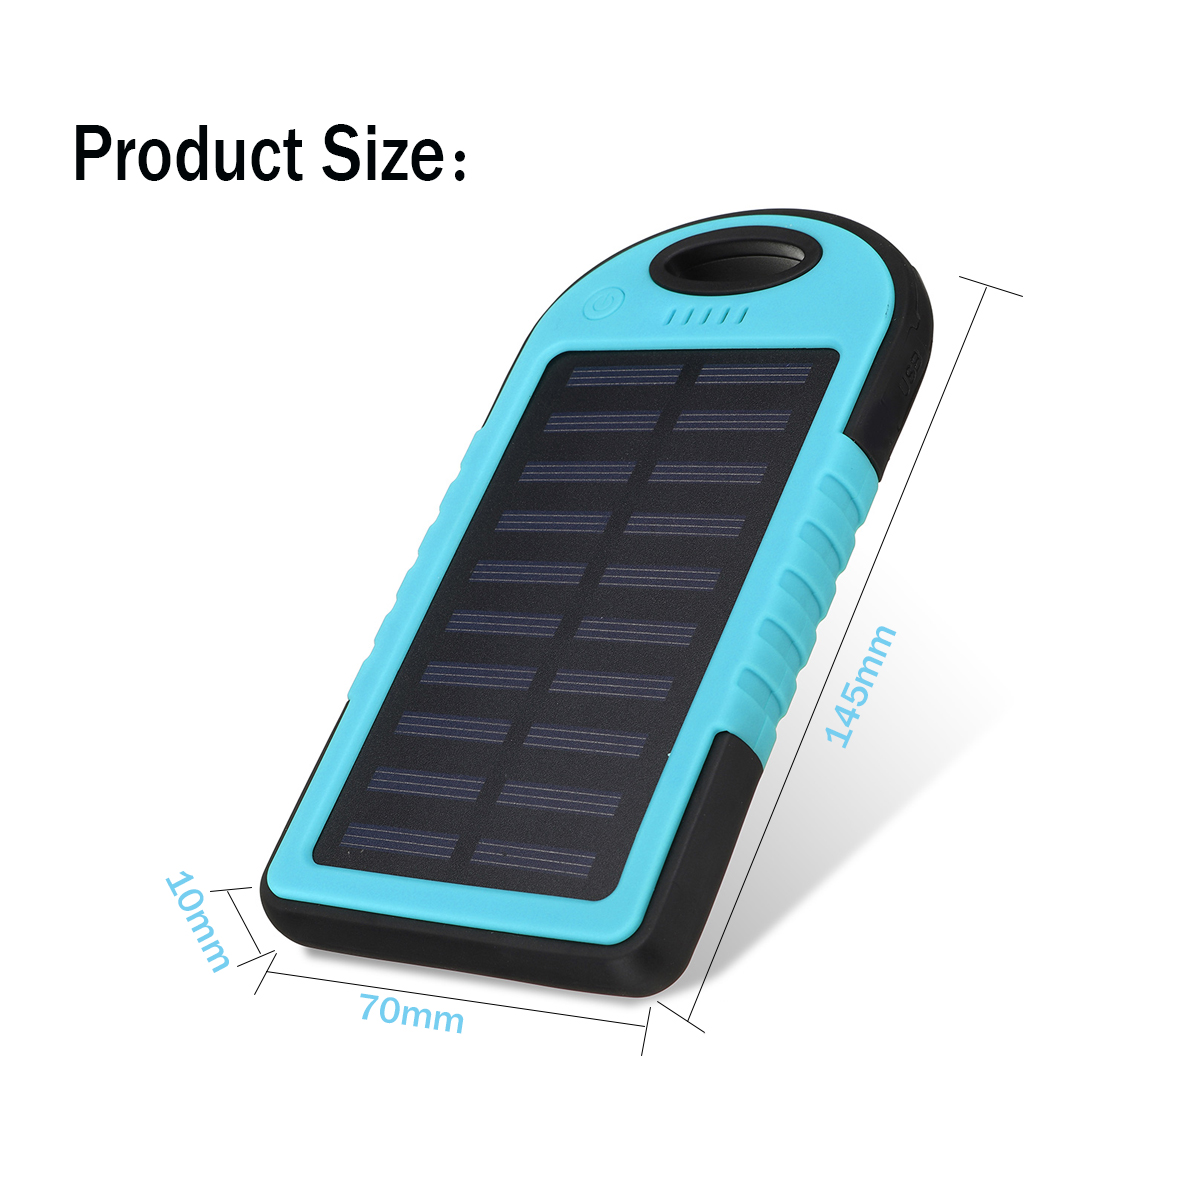 Portable 12000mAh Solar Power Bank for Charging iPhone/iPads/Android Phones/Cameras 3